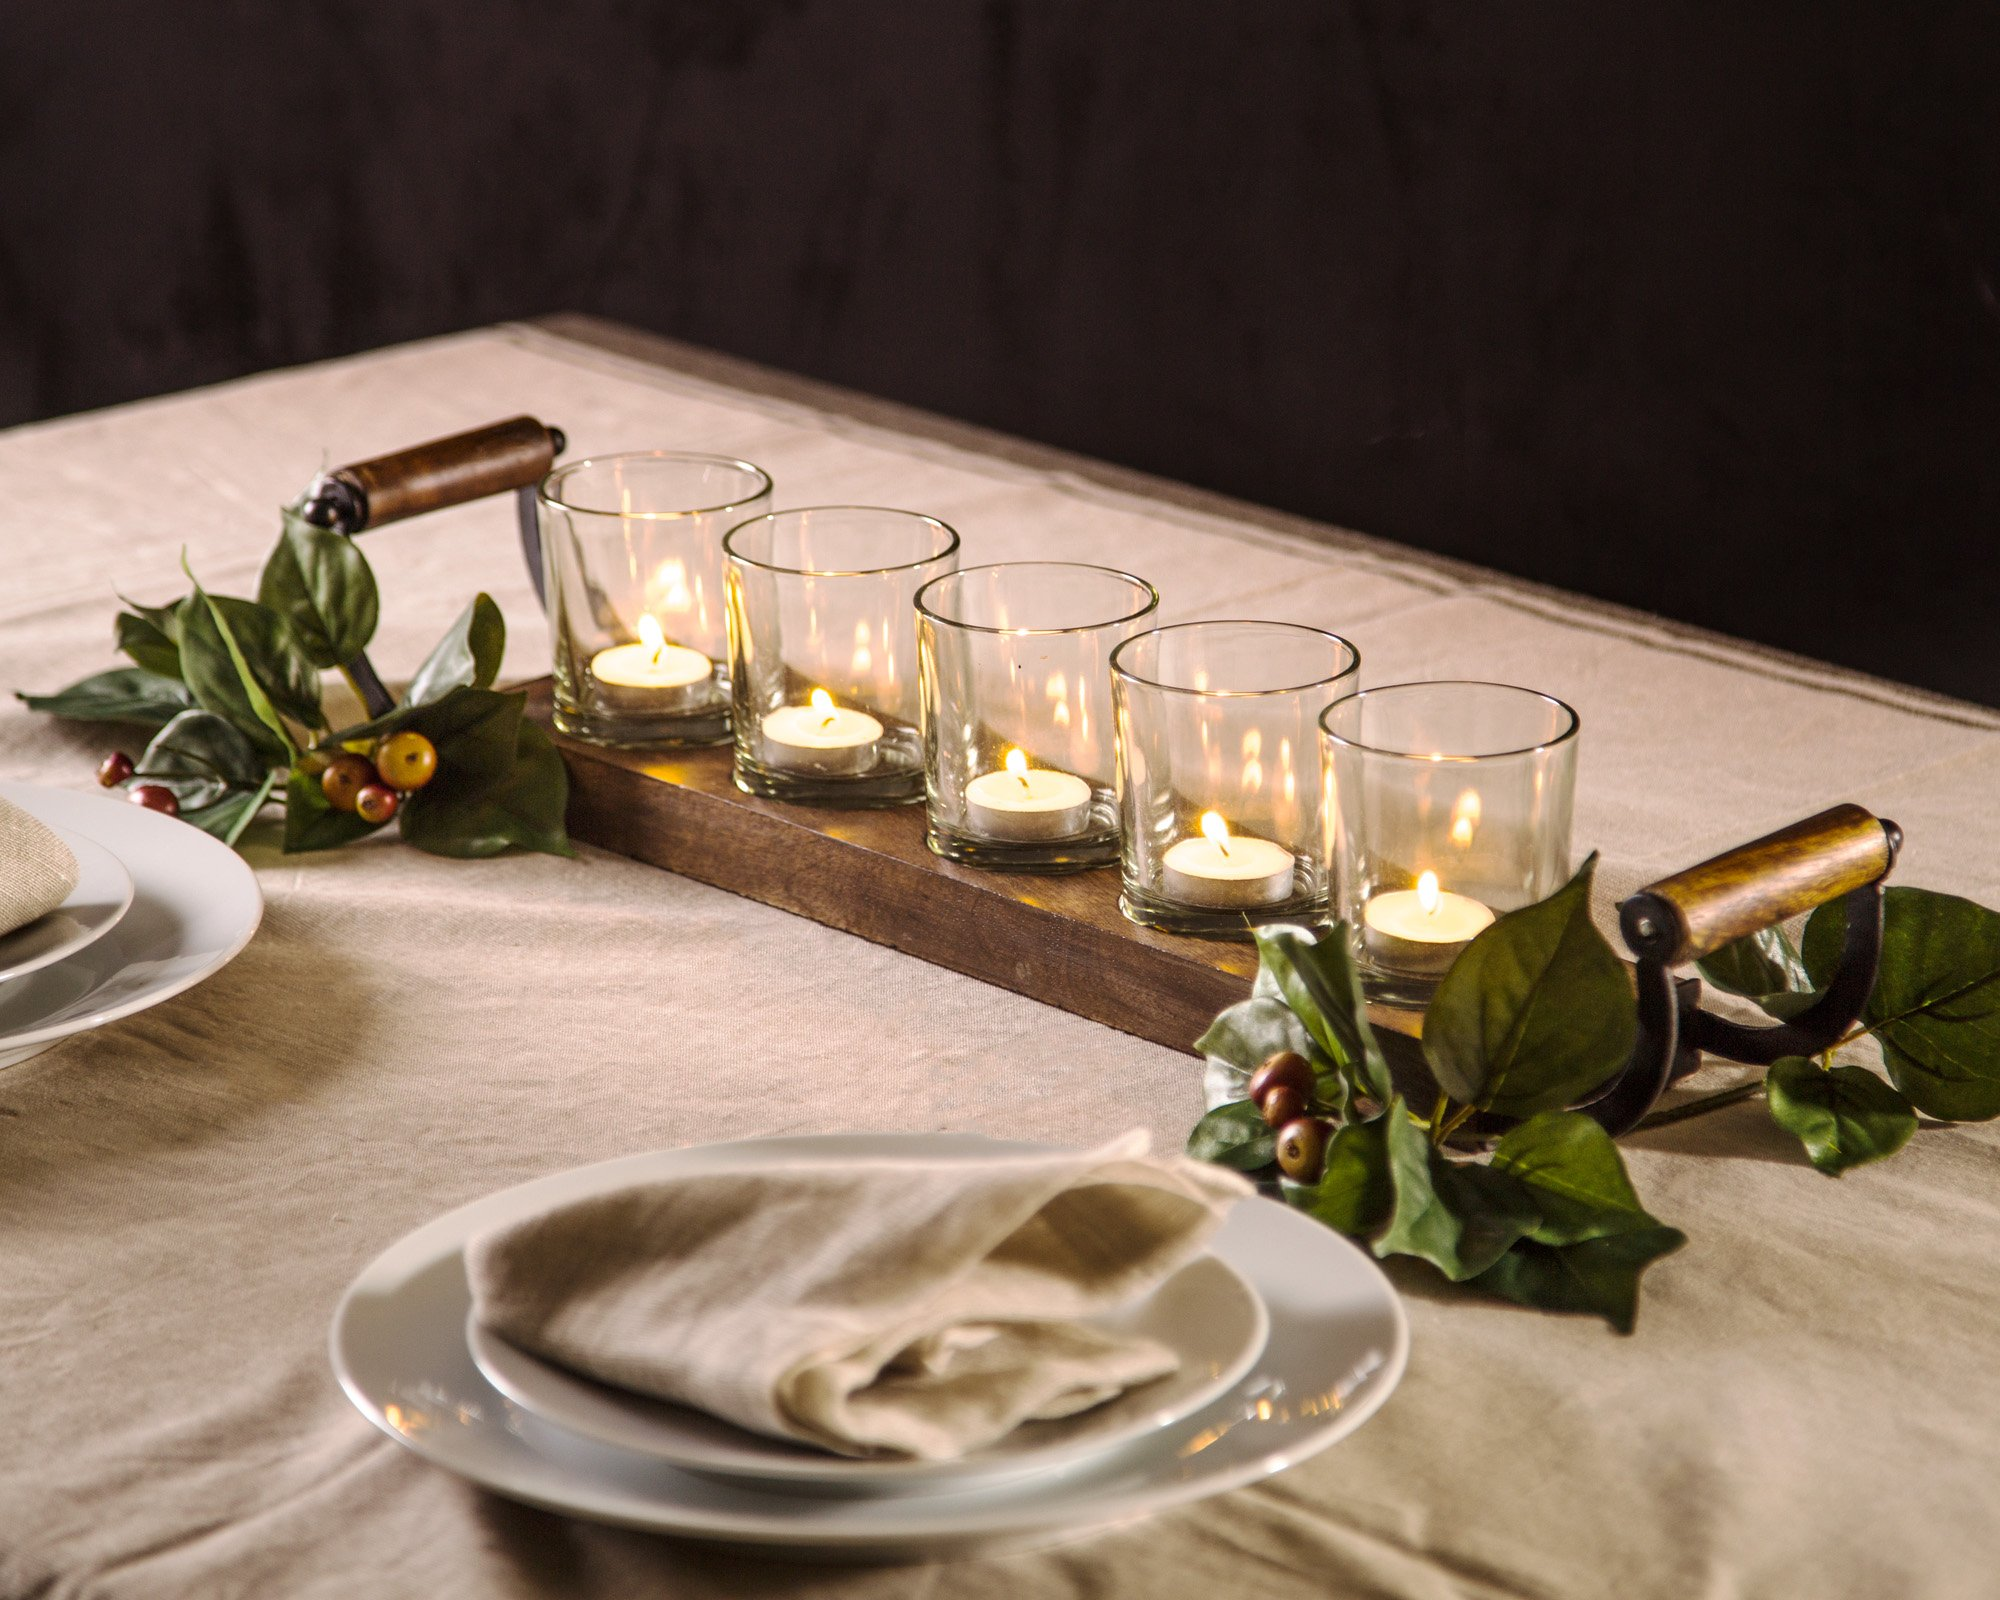 Le'raze Decorative Votive Candle Holder Centerpiece, 5 Glass Votive Cups On Wood Base/Tray for Wedding Decoration Dining Table with Handles by Le'raze (Image #1)